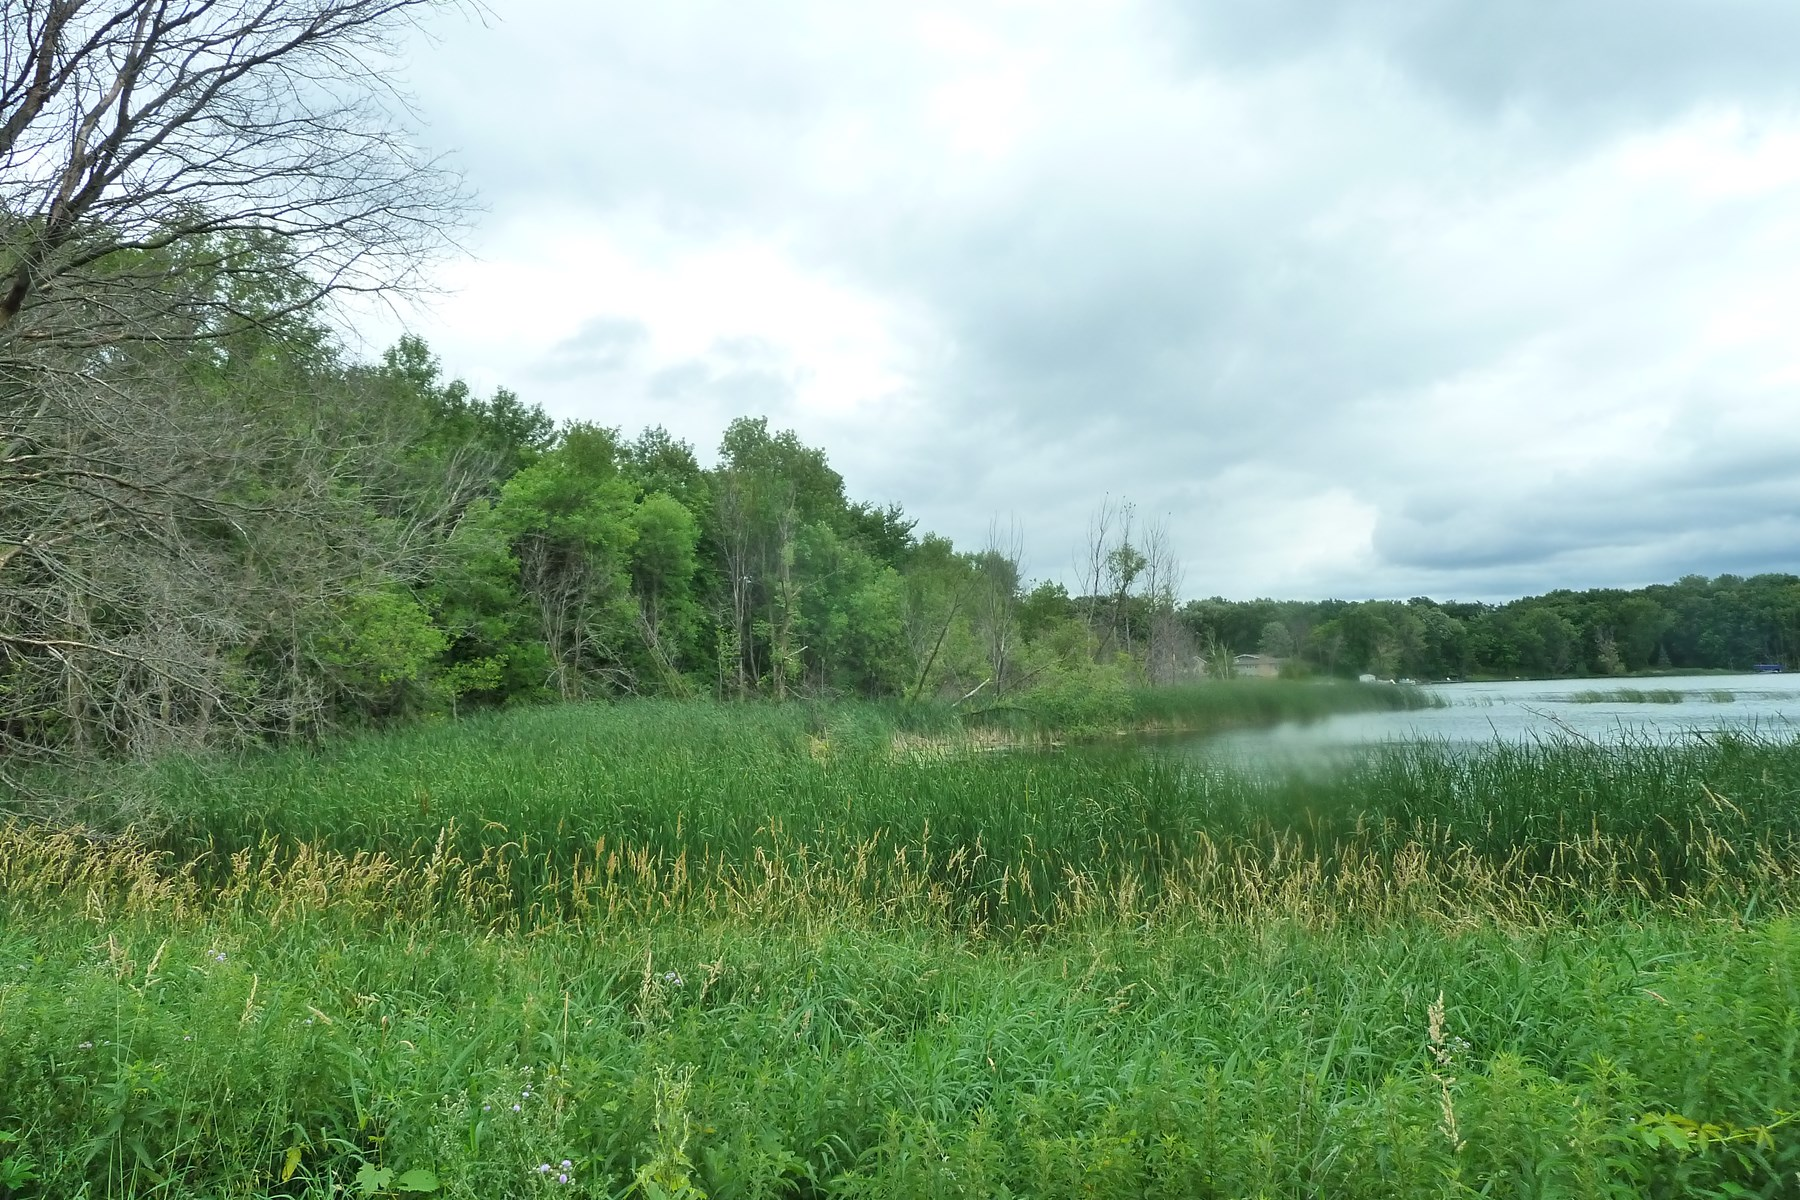 34+ Acres on Indian Lake - xxx 110th St. NW, Maple Lake, MN - Ends 8/9/19